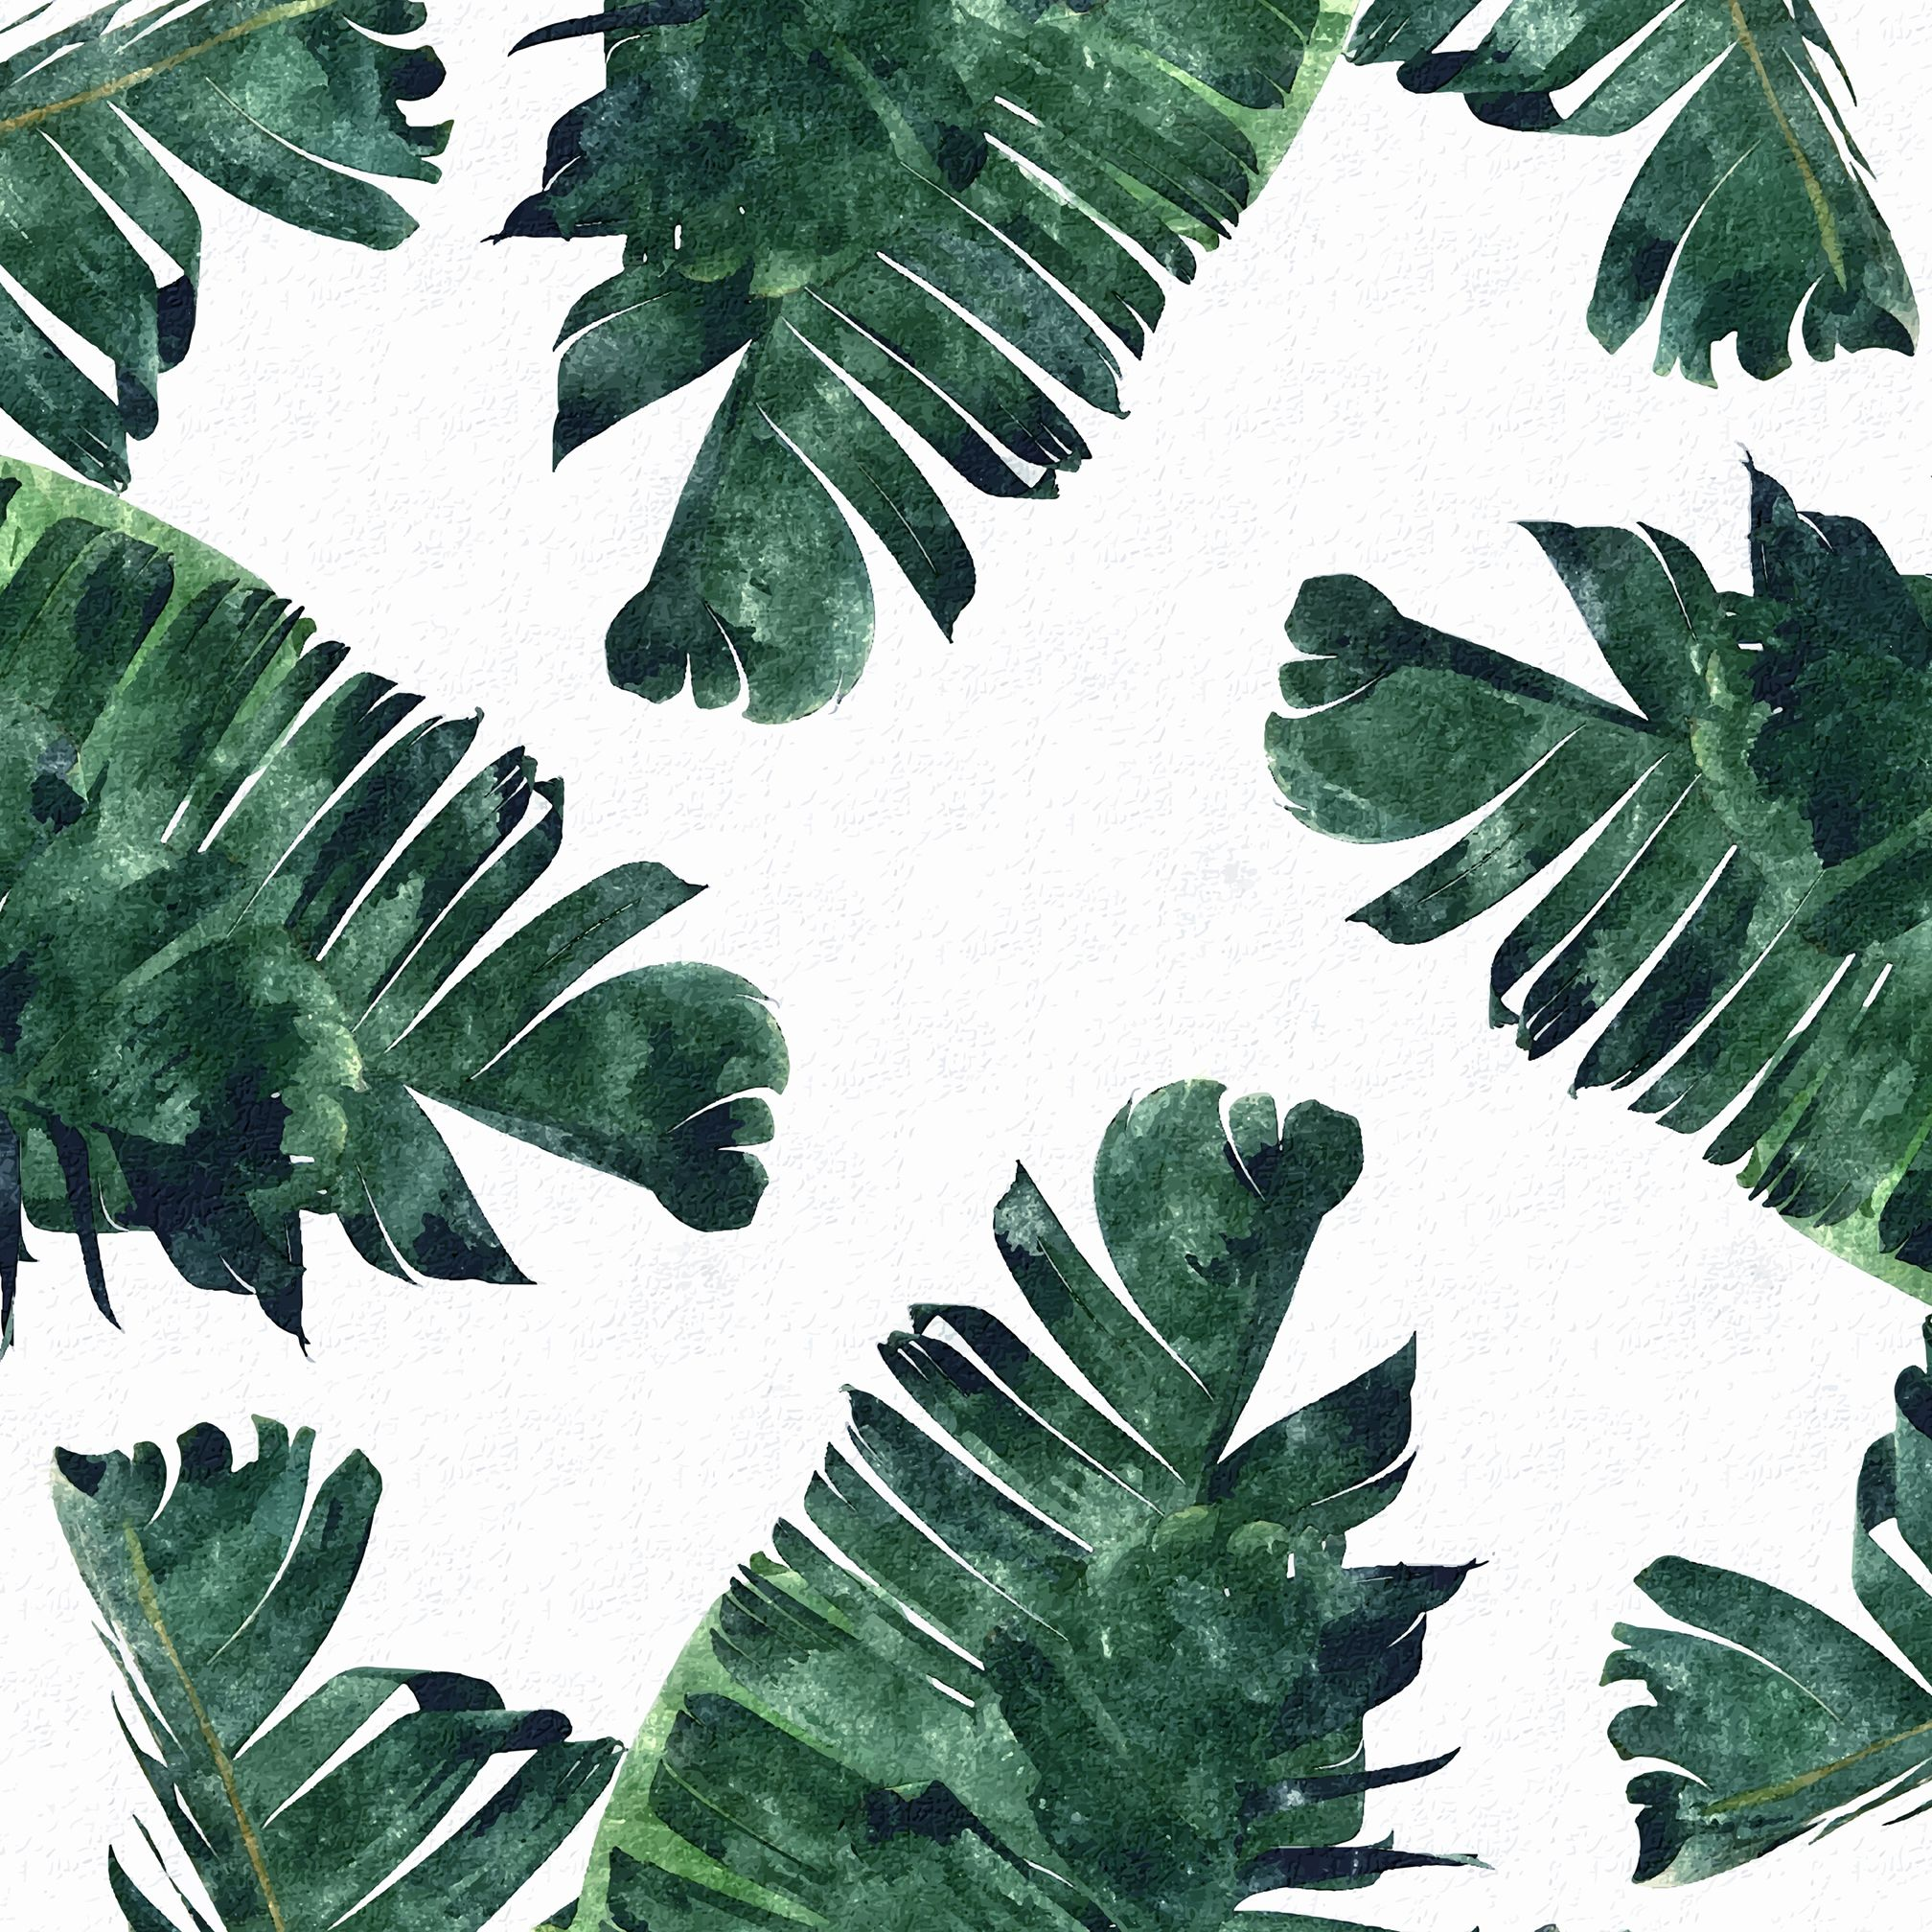 Banana Leaf Watercolor Banana Leaves Watercolor Leaf Background